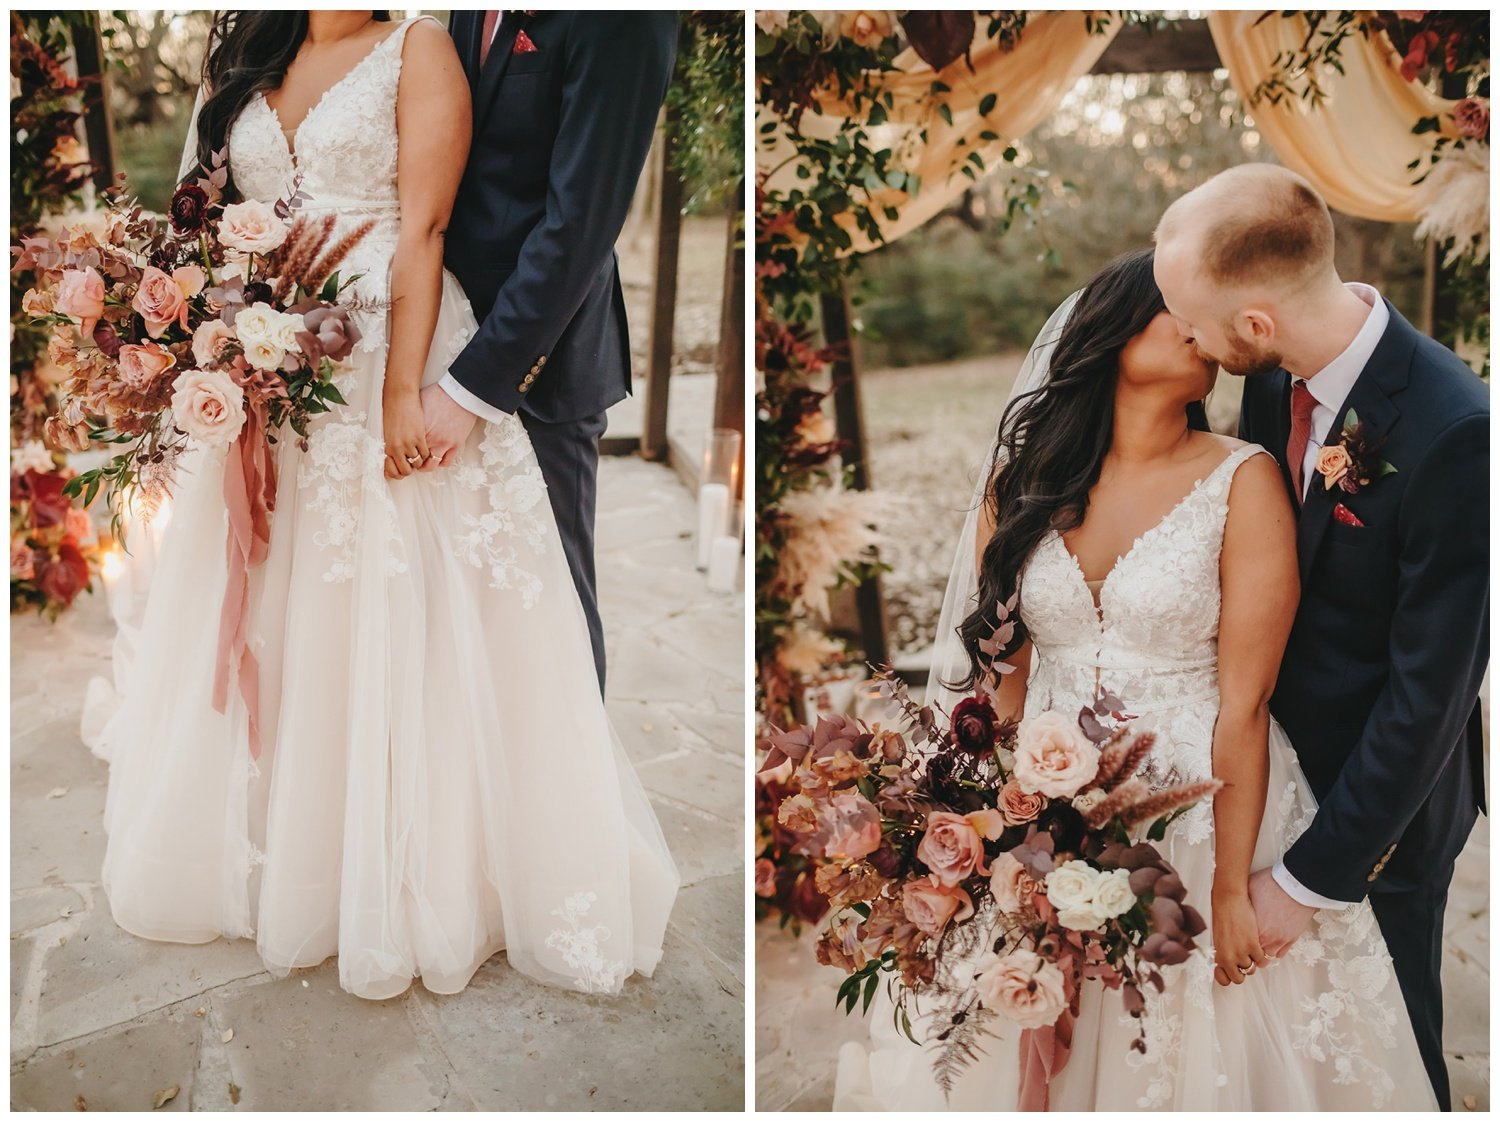 bride and groom standing in front of ceremony set up with burgundy, blush and mauve flowers and pampas grass